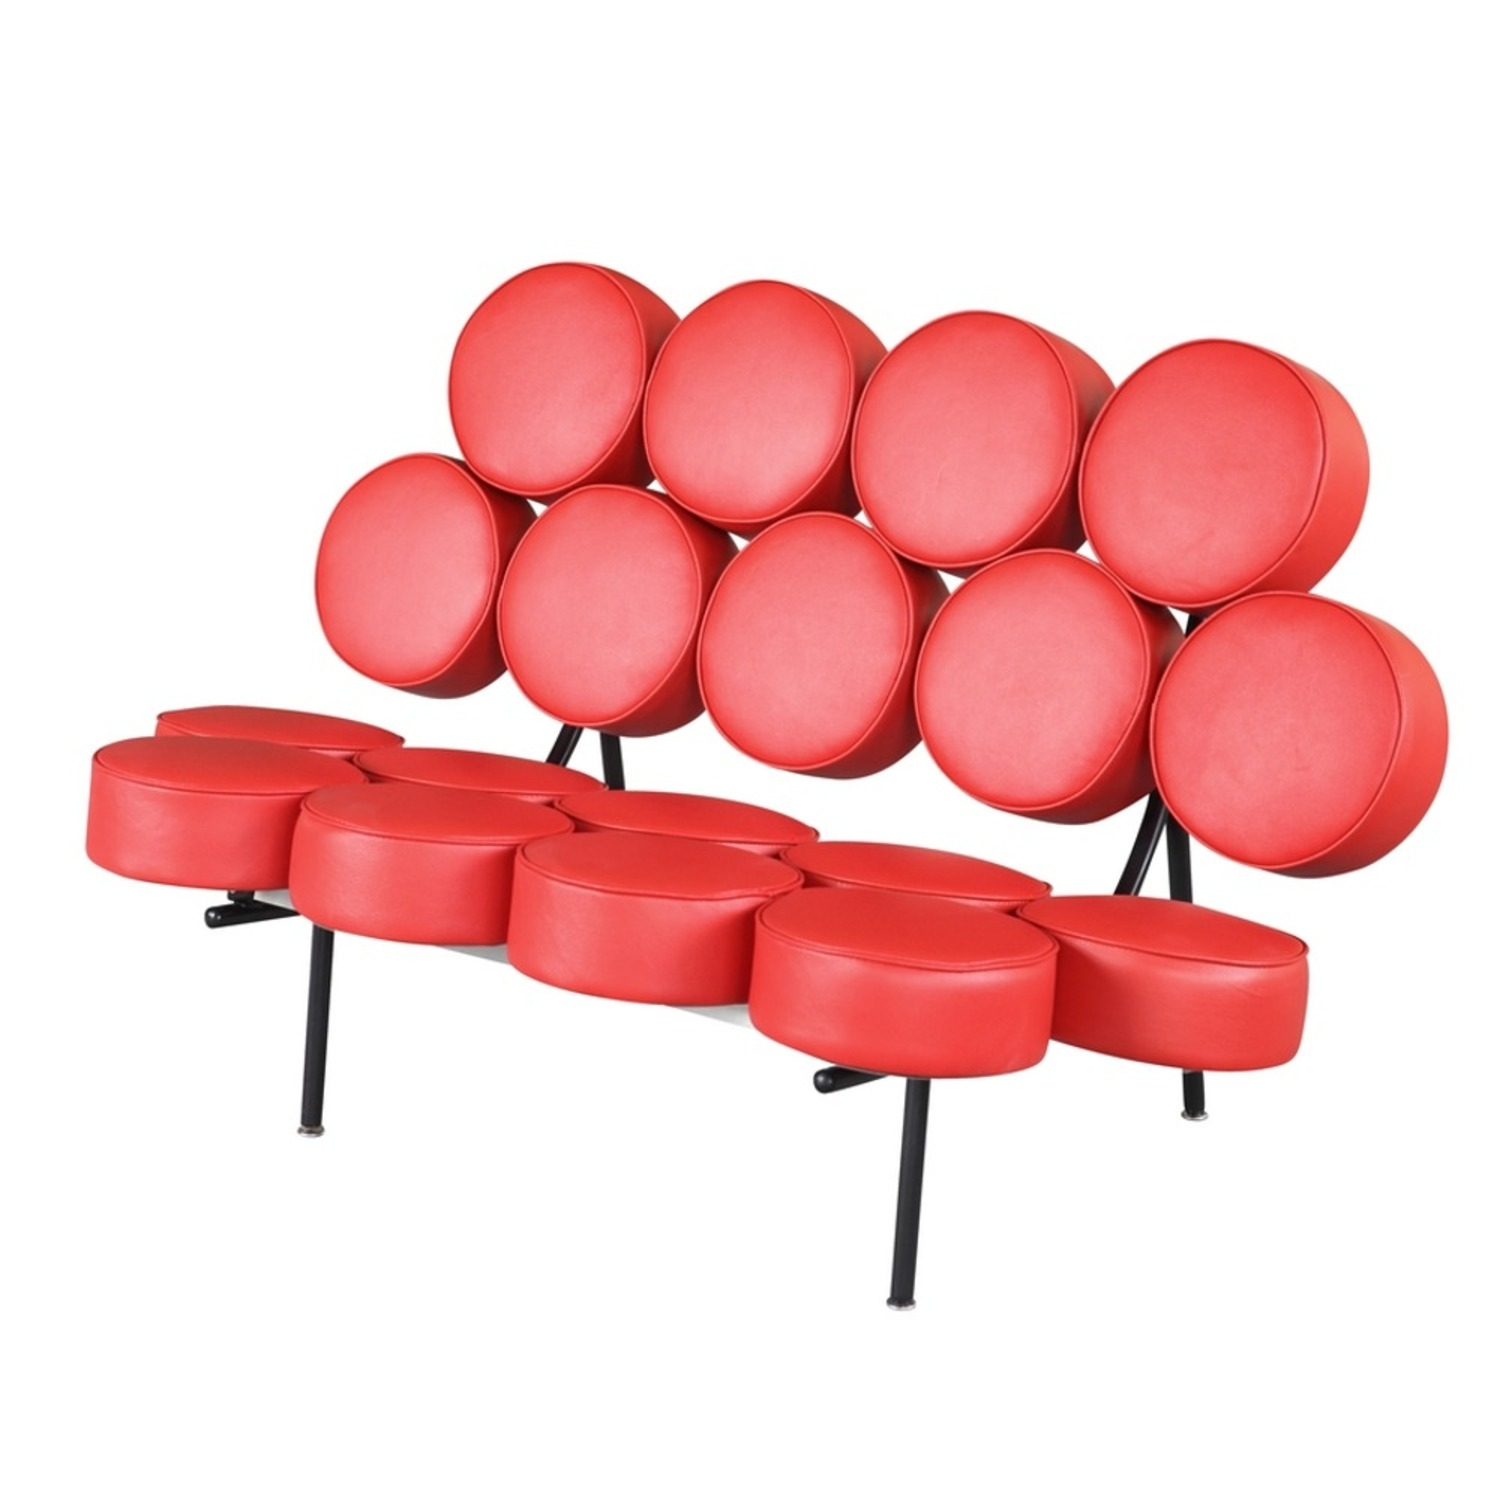 Sofa In Red Leather W/ Circle Seat & Back Design - image-4